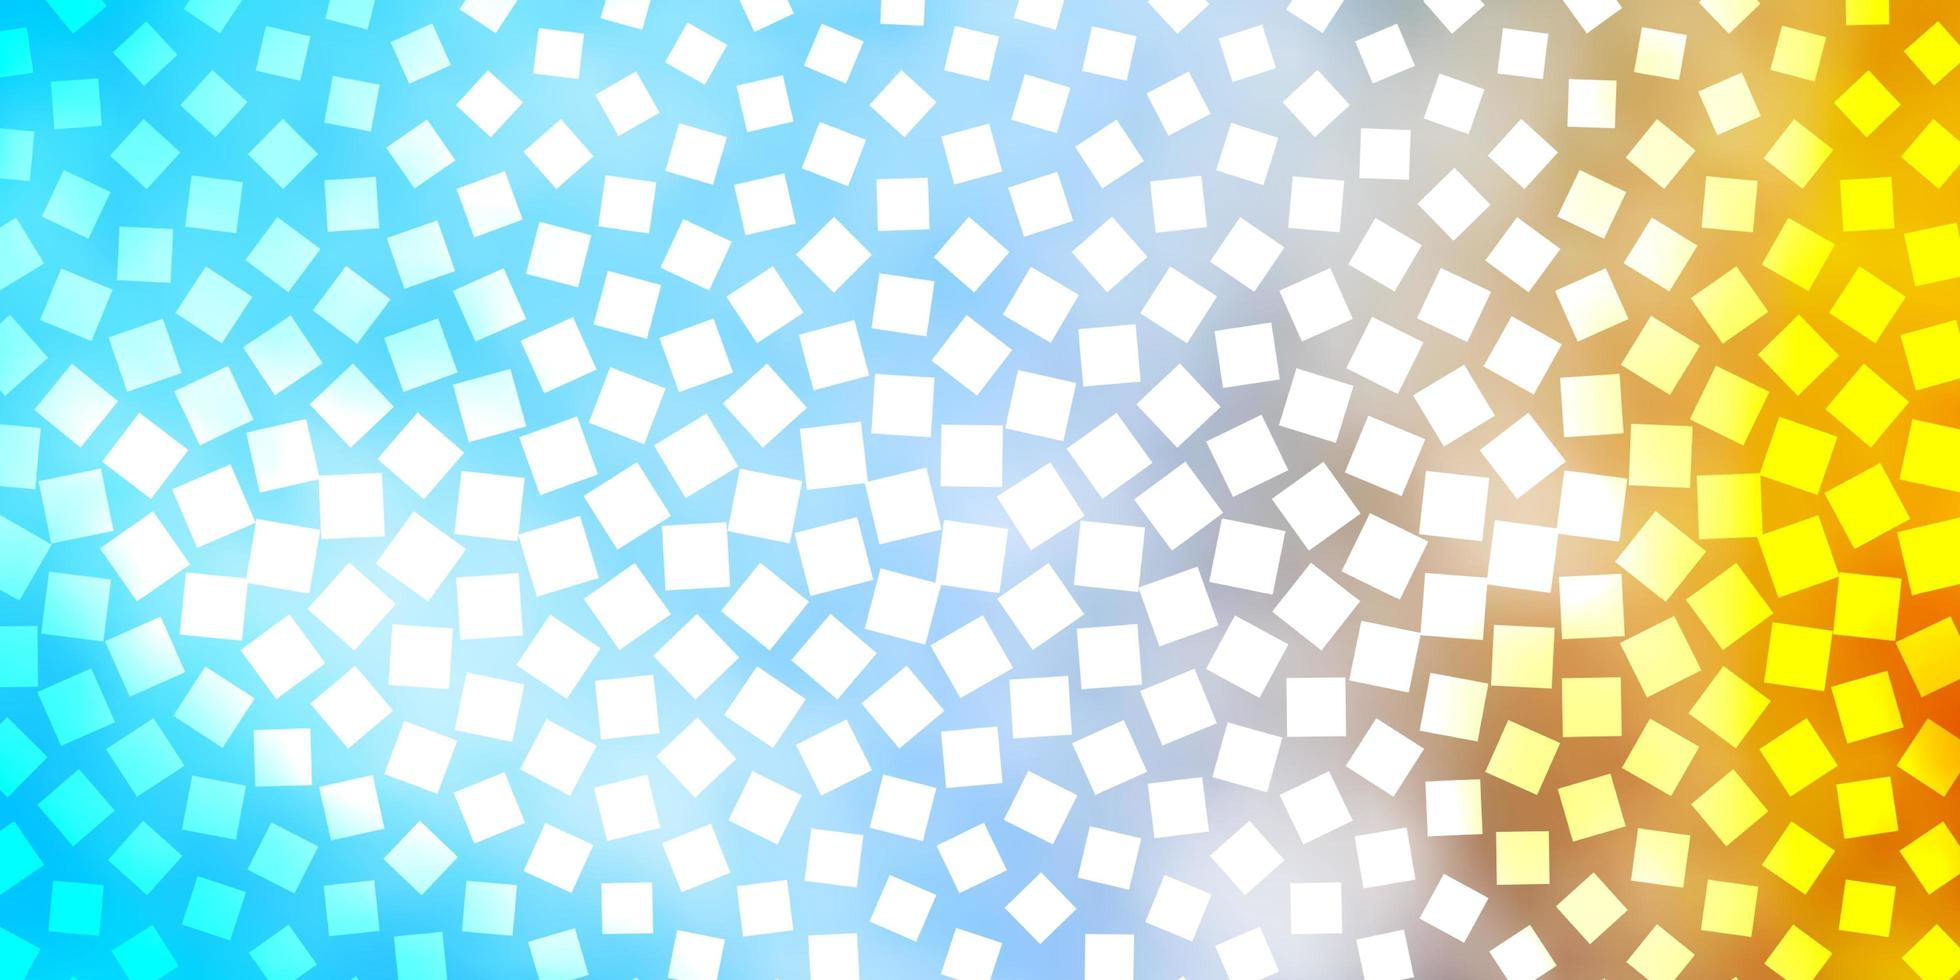 Light Blue, Yellow vector pattern in square style.